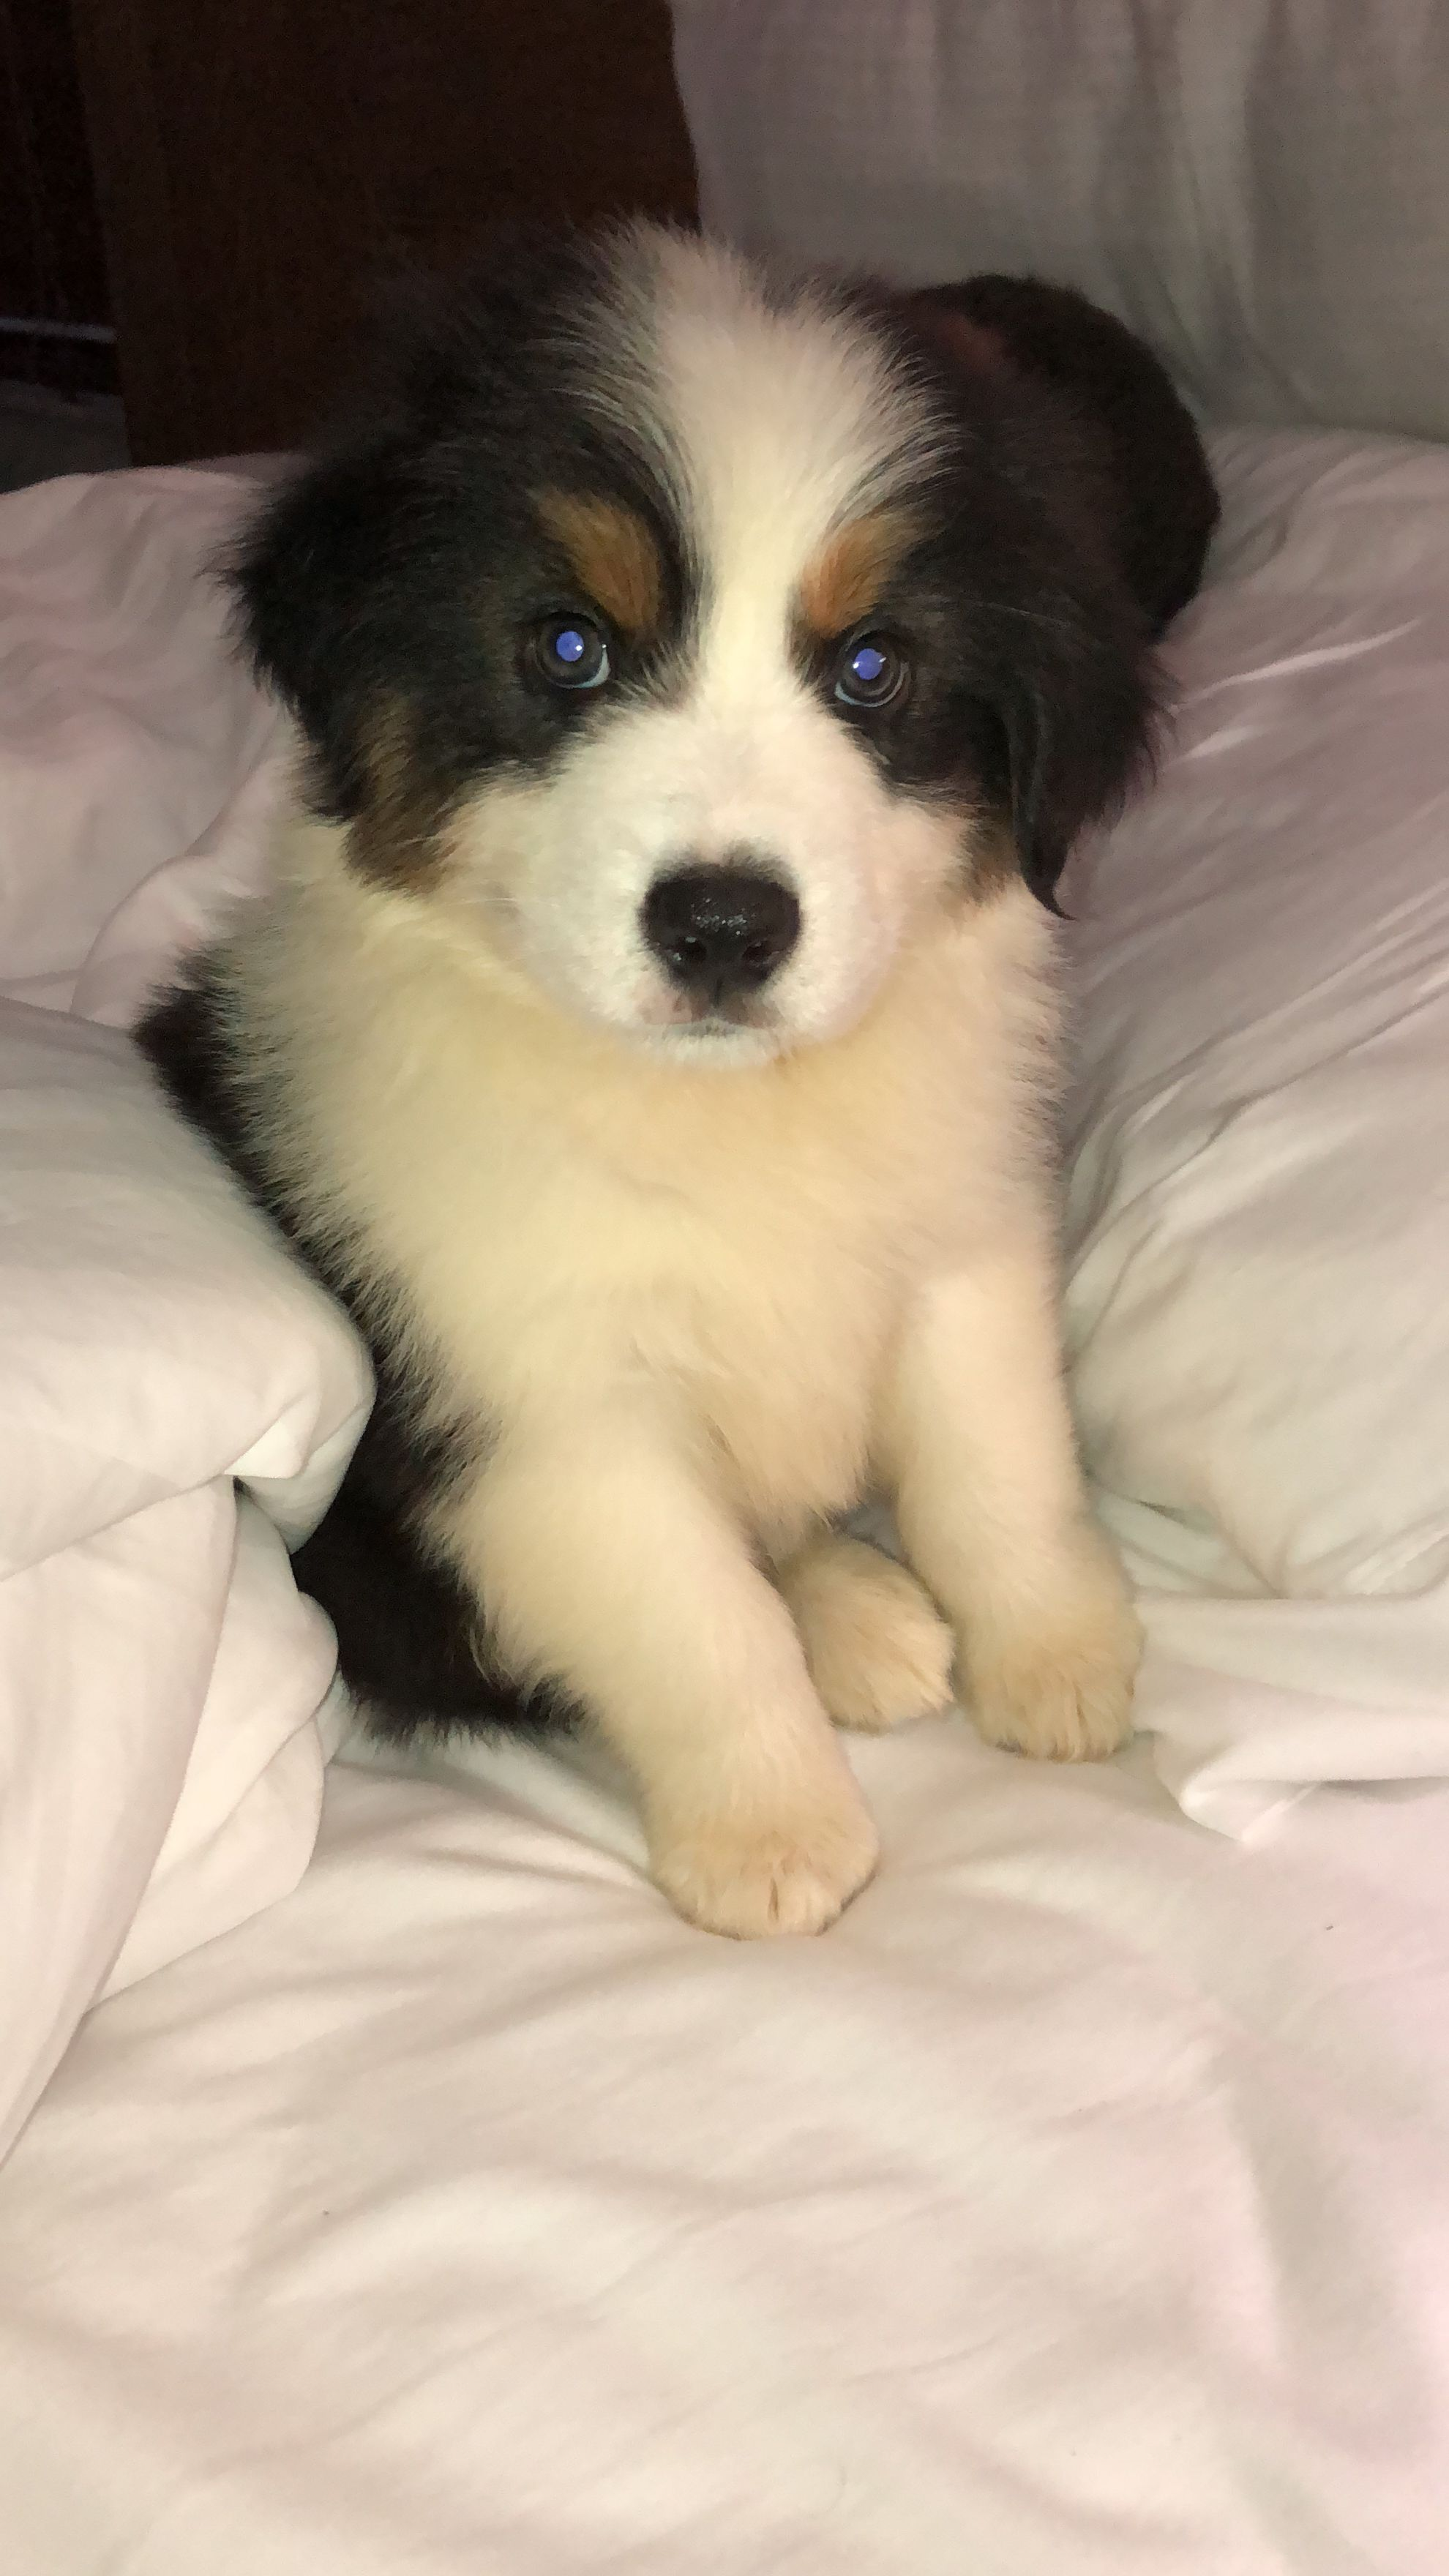 Border Collie Australian Shepard Mix Puppy Leroy Love Australian Shepard Mix Cute Puppies And Kittens Border Collie